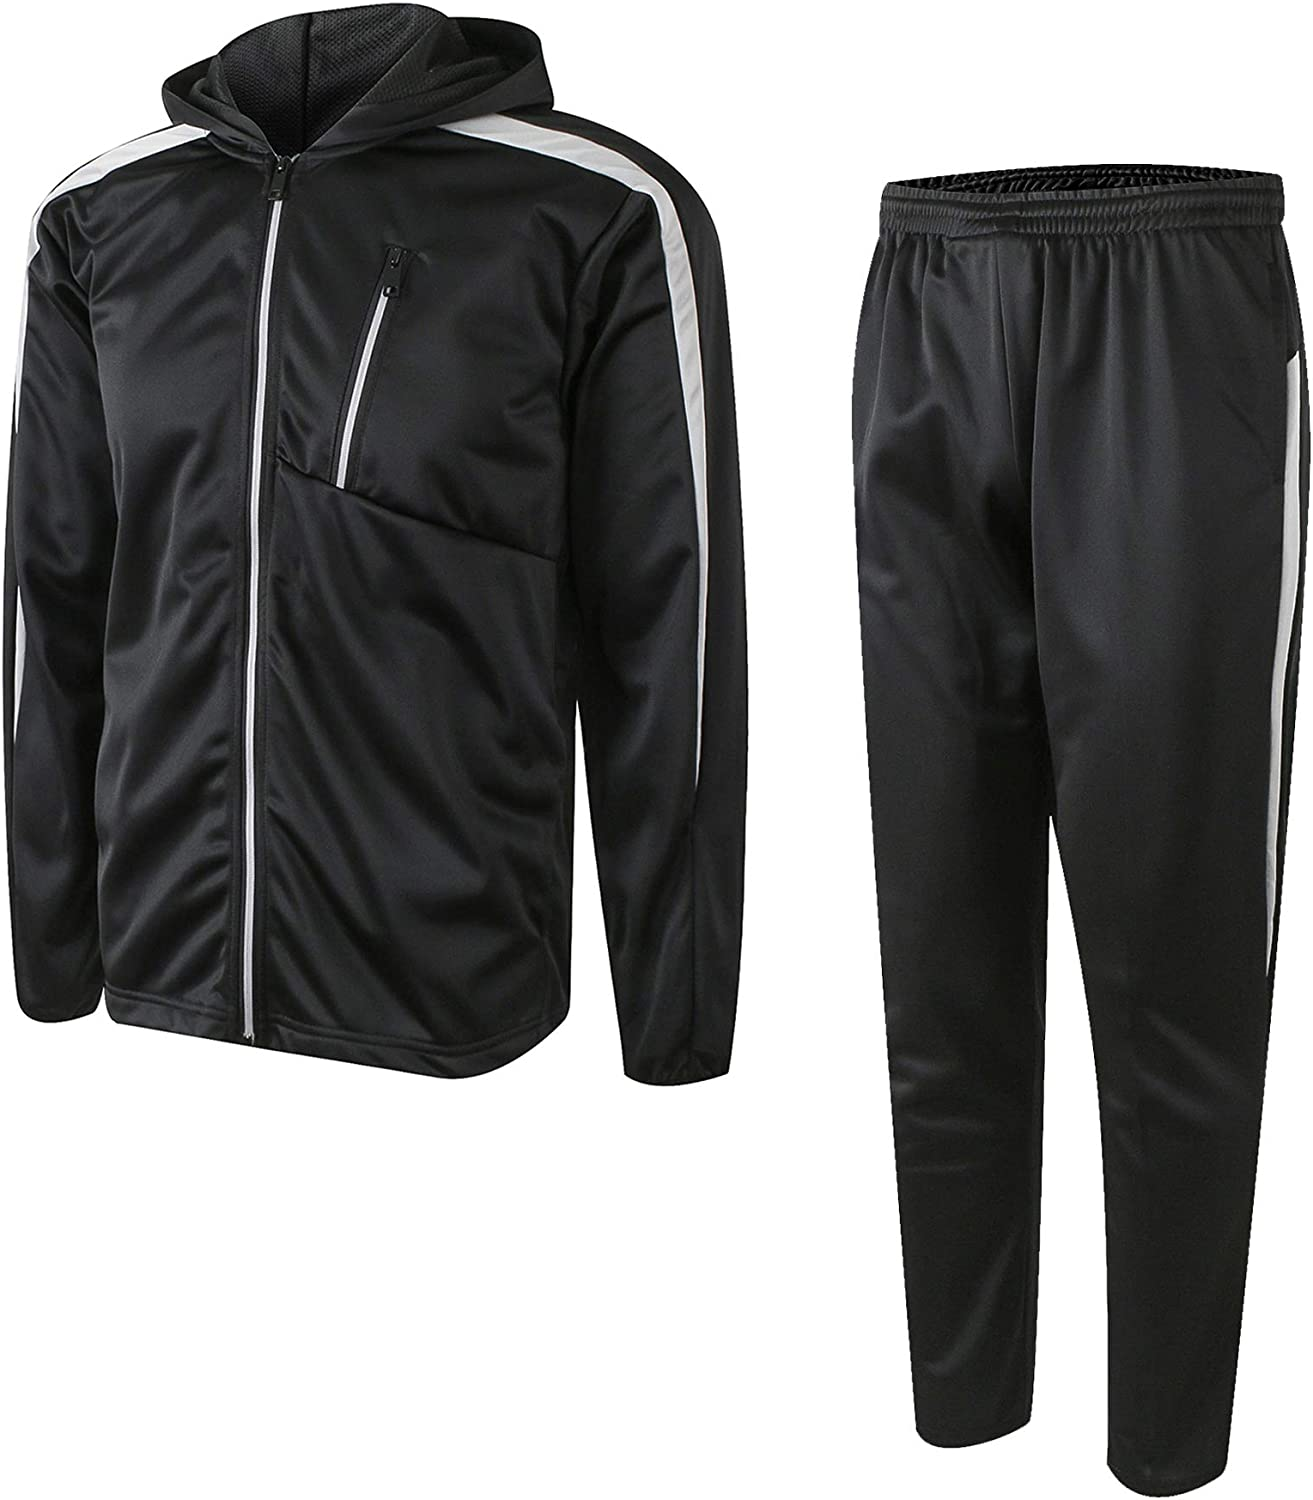 URBEX Mens Athletic 2 Piece Limited price Tracksuit Spor Finally popular brand Set Hooded Jacket and